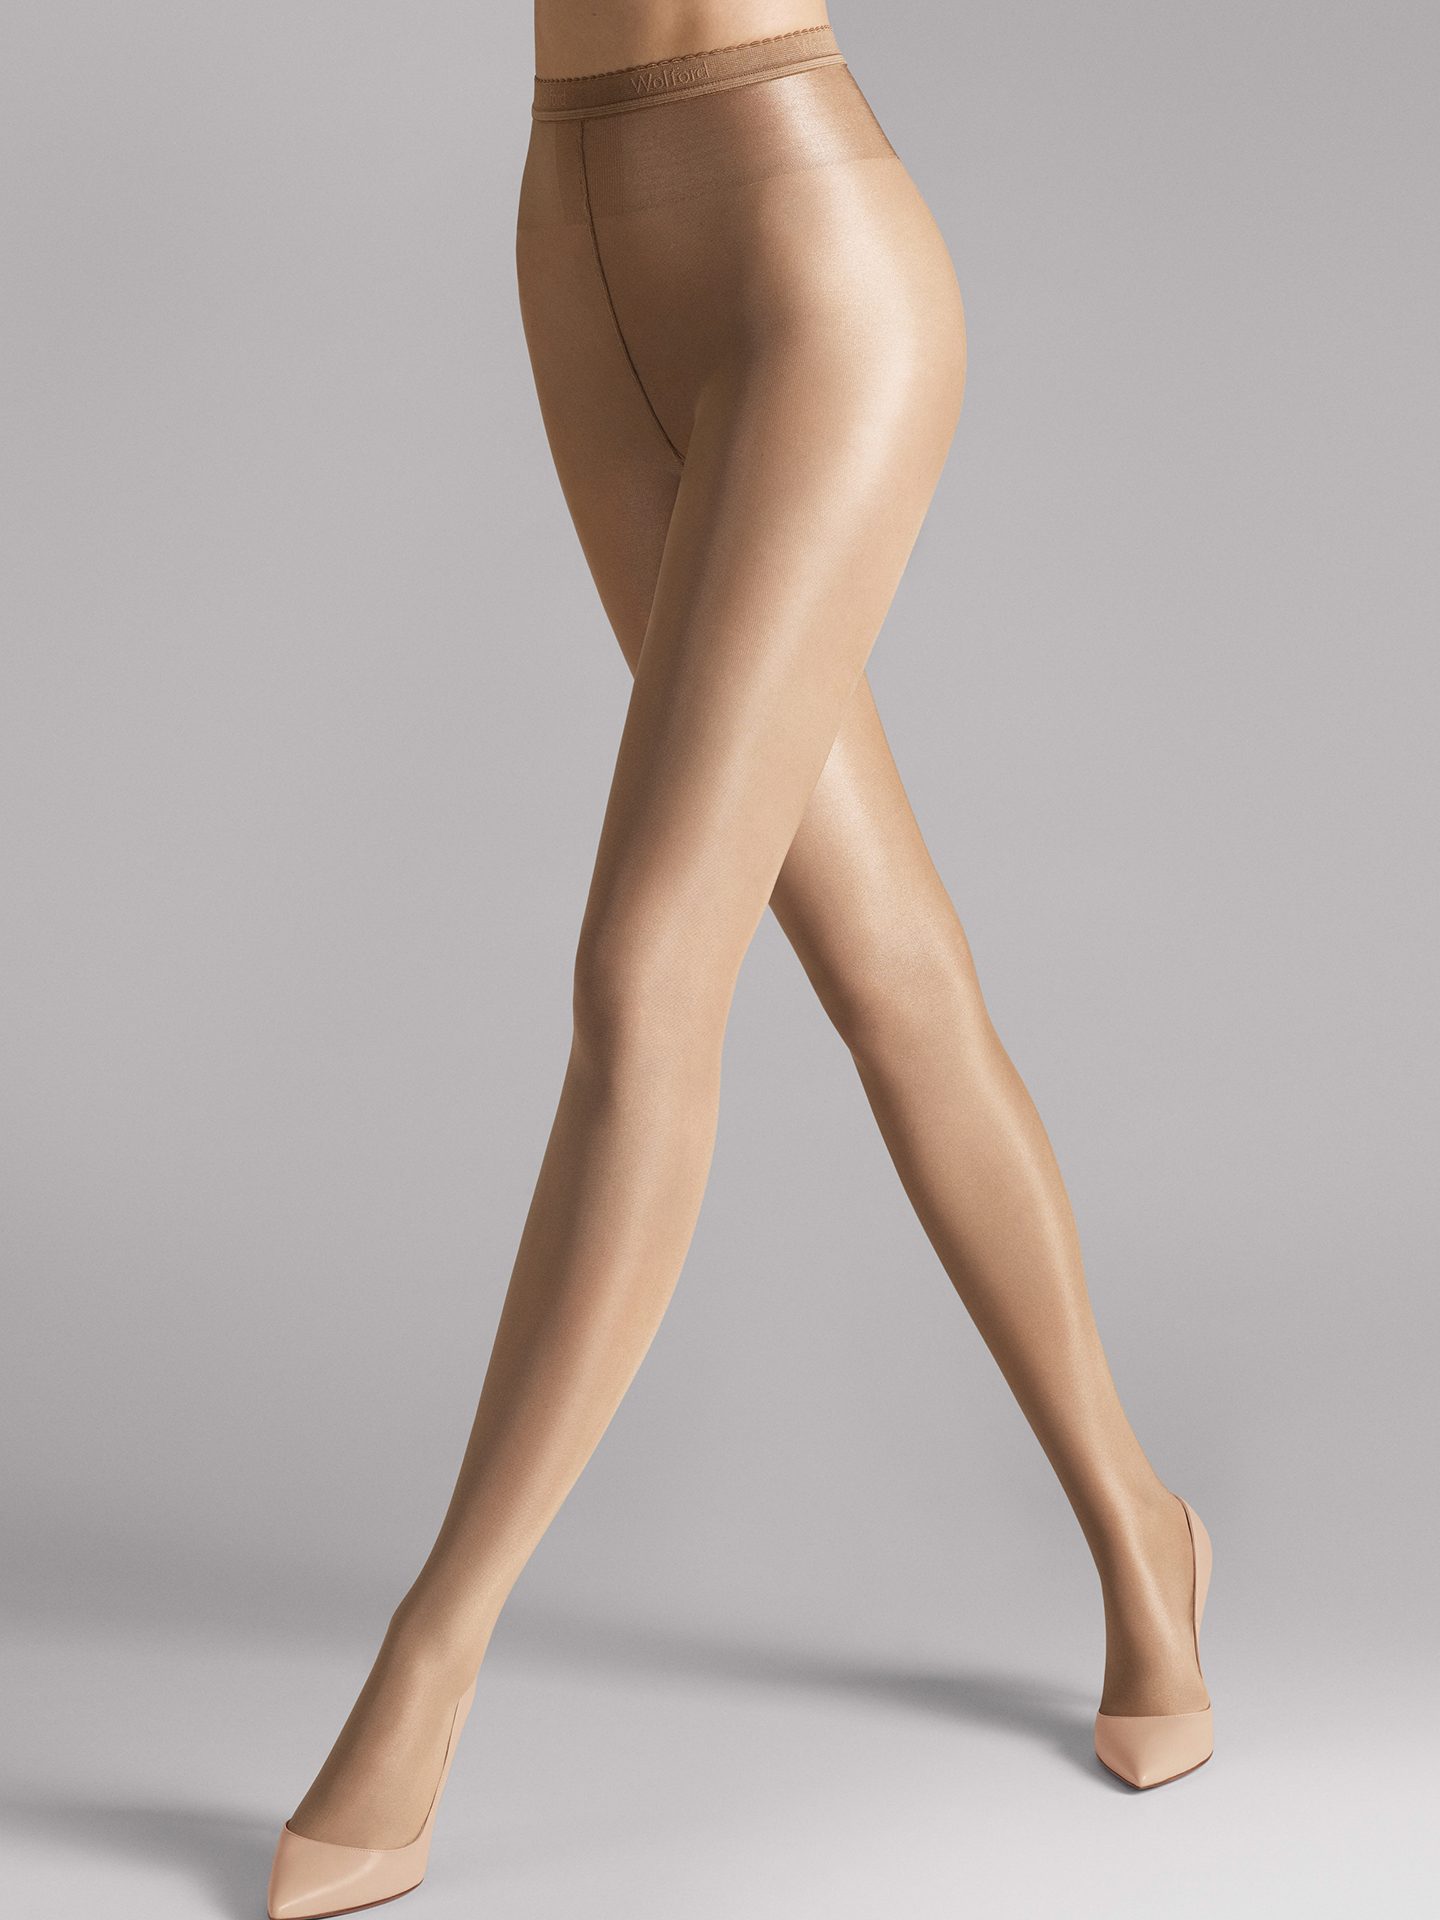 Wolford Apparel & Accessories > Clothing > Collant Neon 40 - 4273 - L